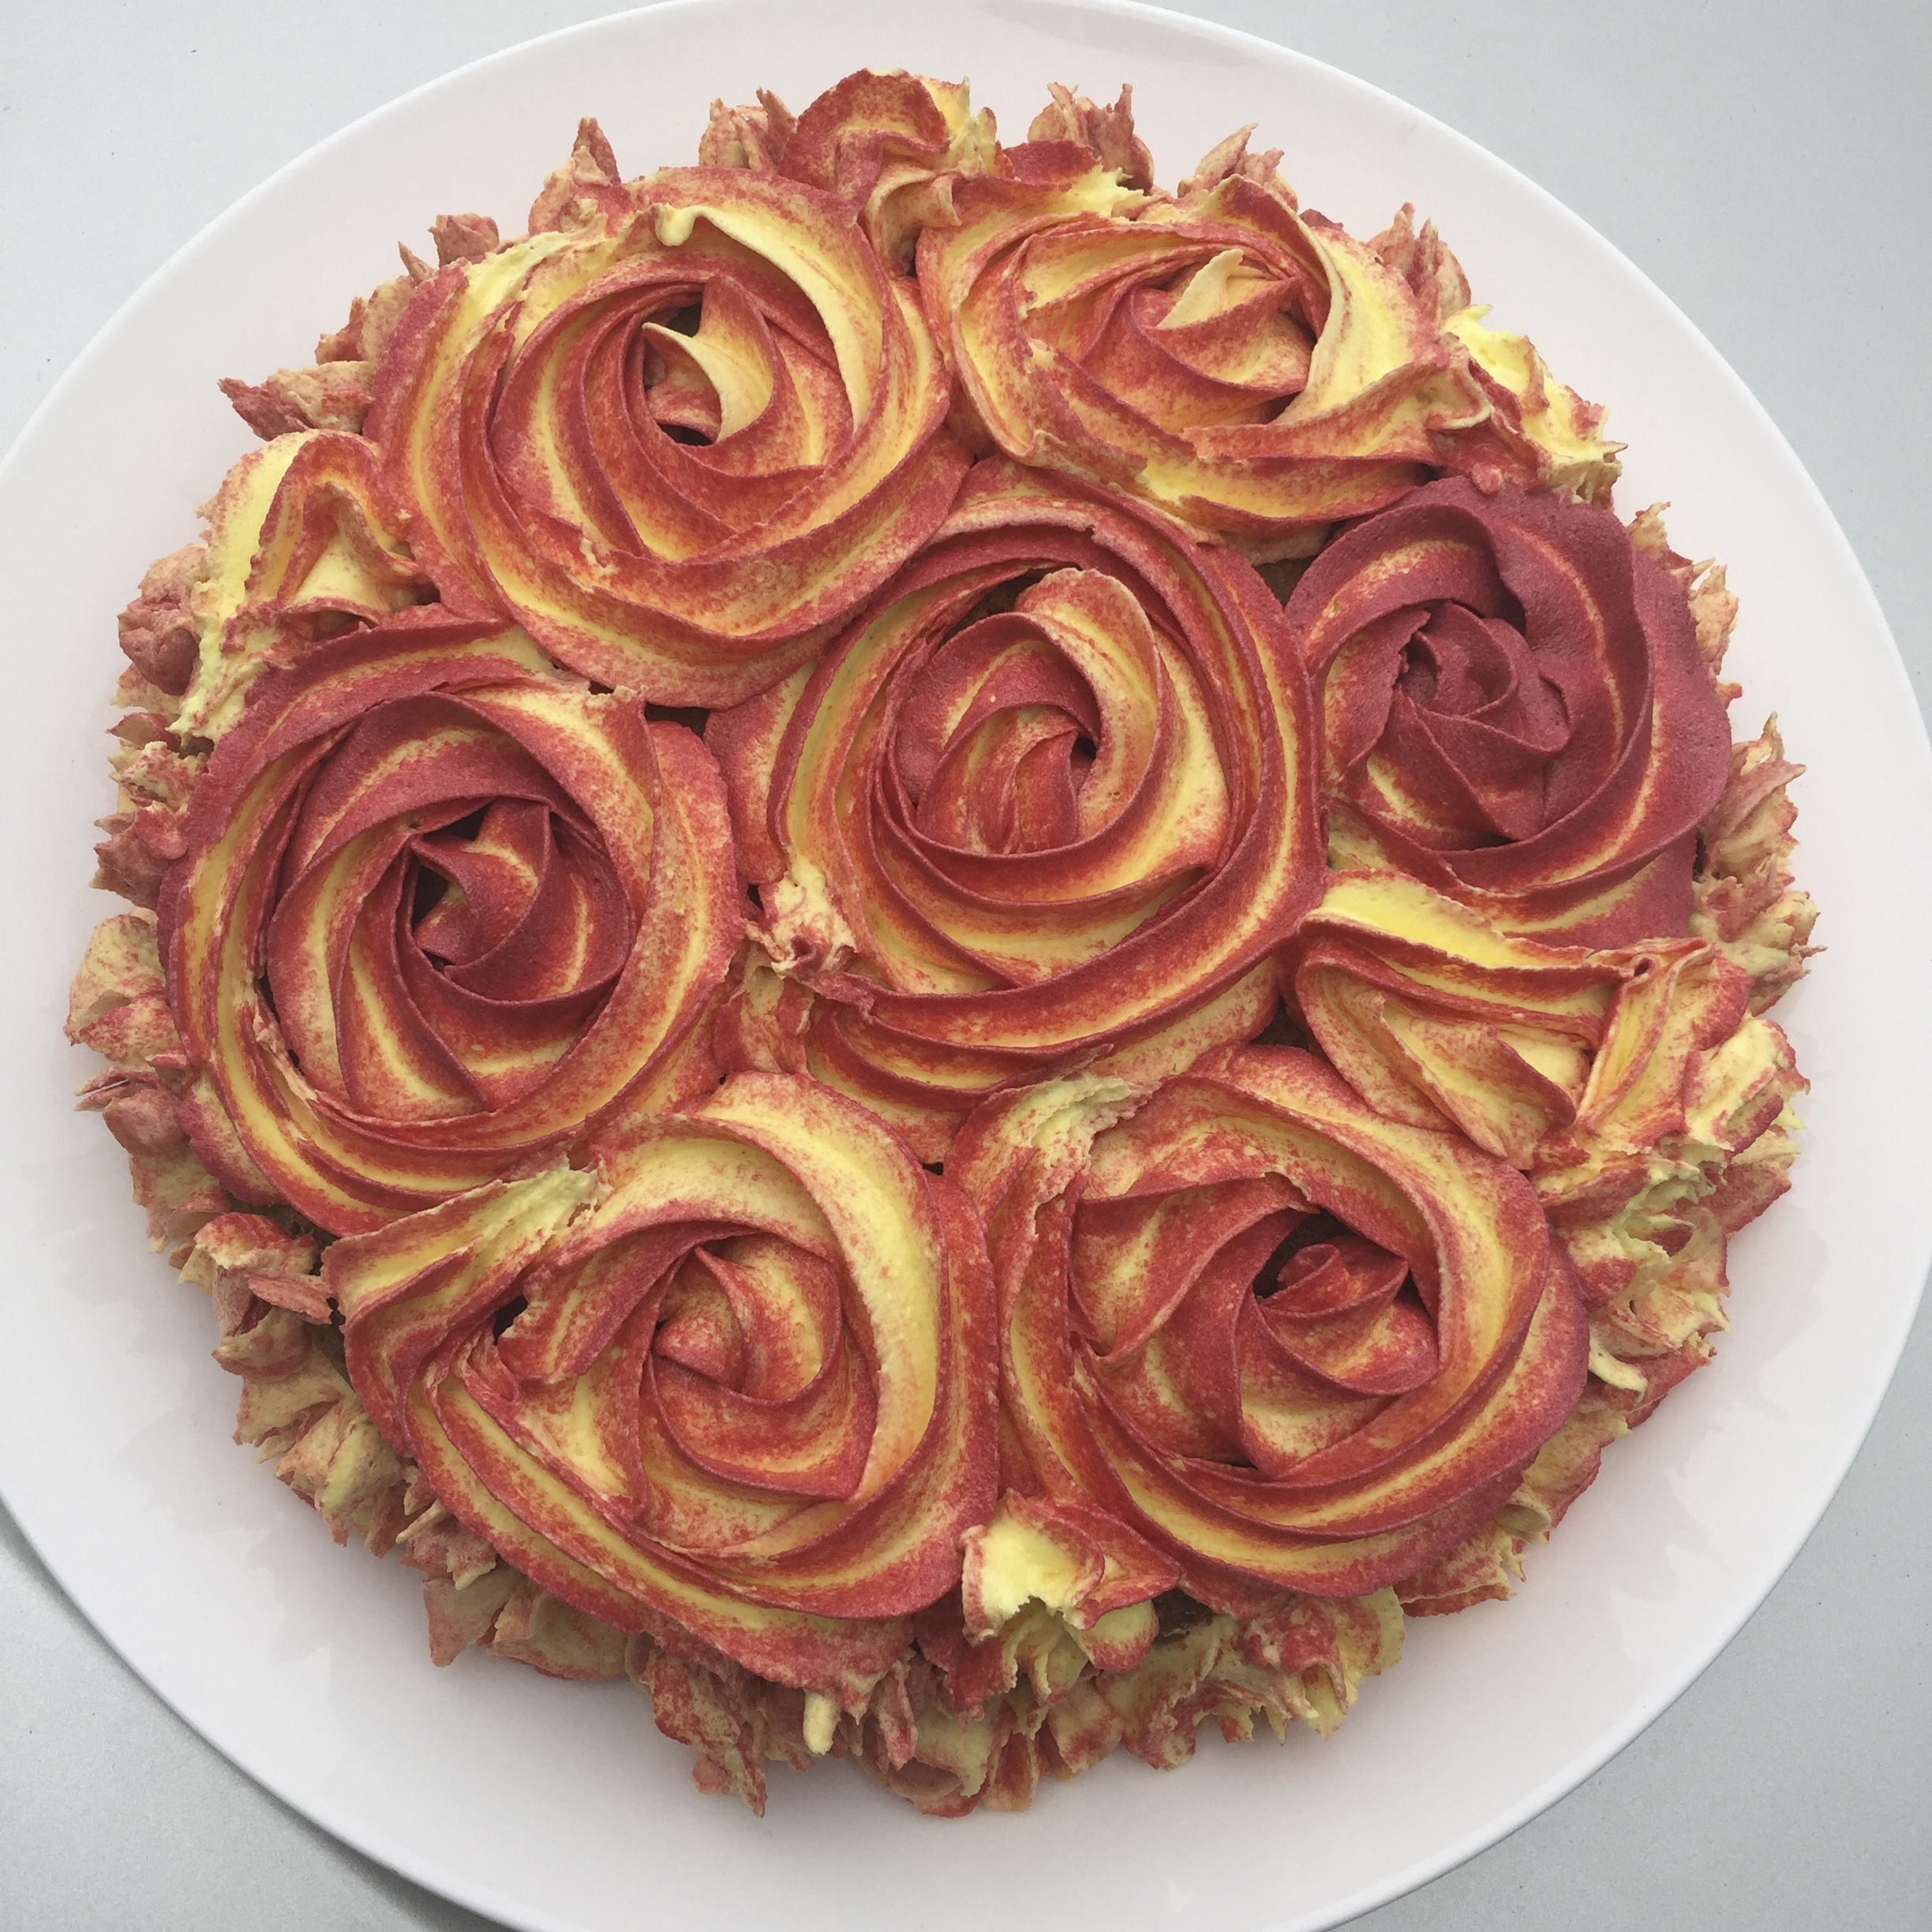 Celebration Cake Chocolate Cake With Fancy Butter Cream Icing In Yellow And Maroon Rosettes